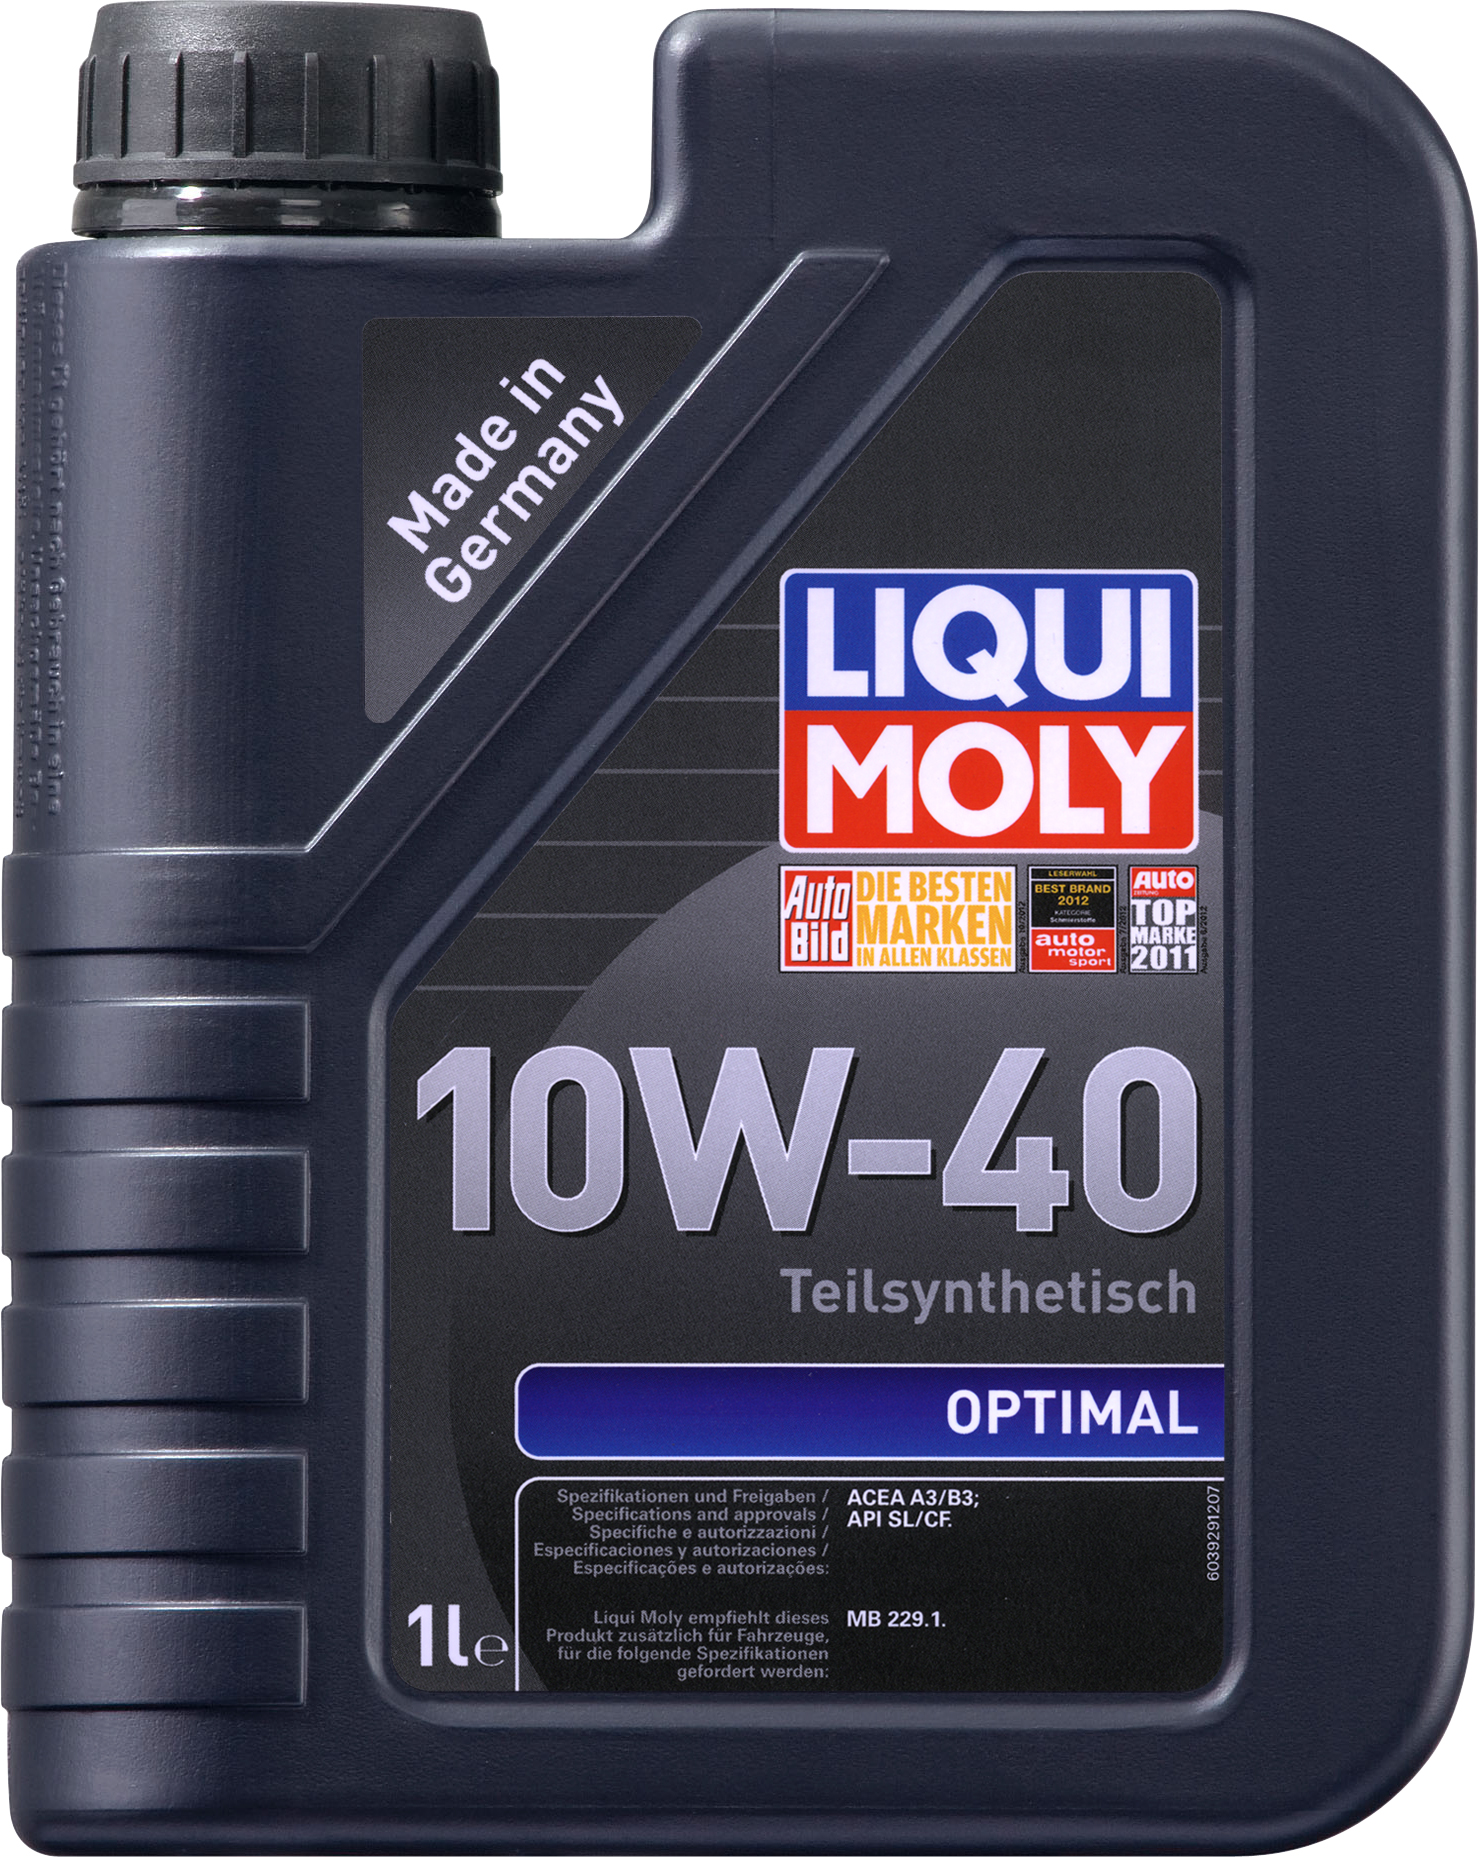 Liqui Moly Optimal 10W-40 1L